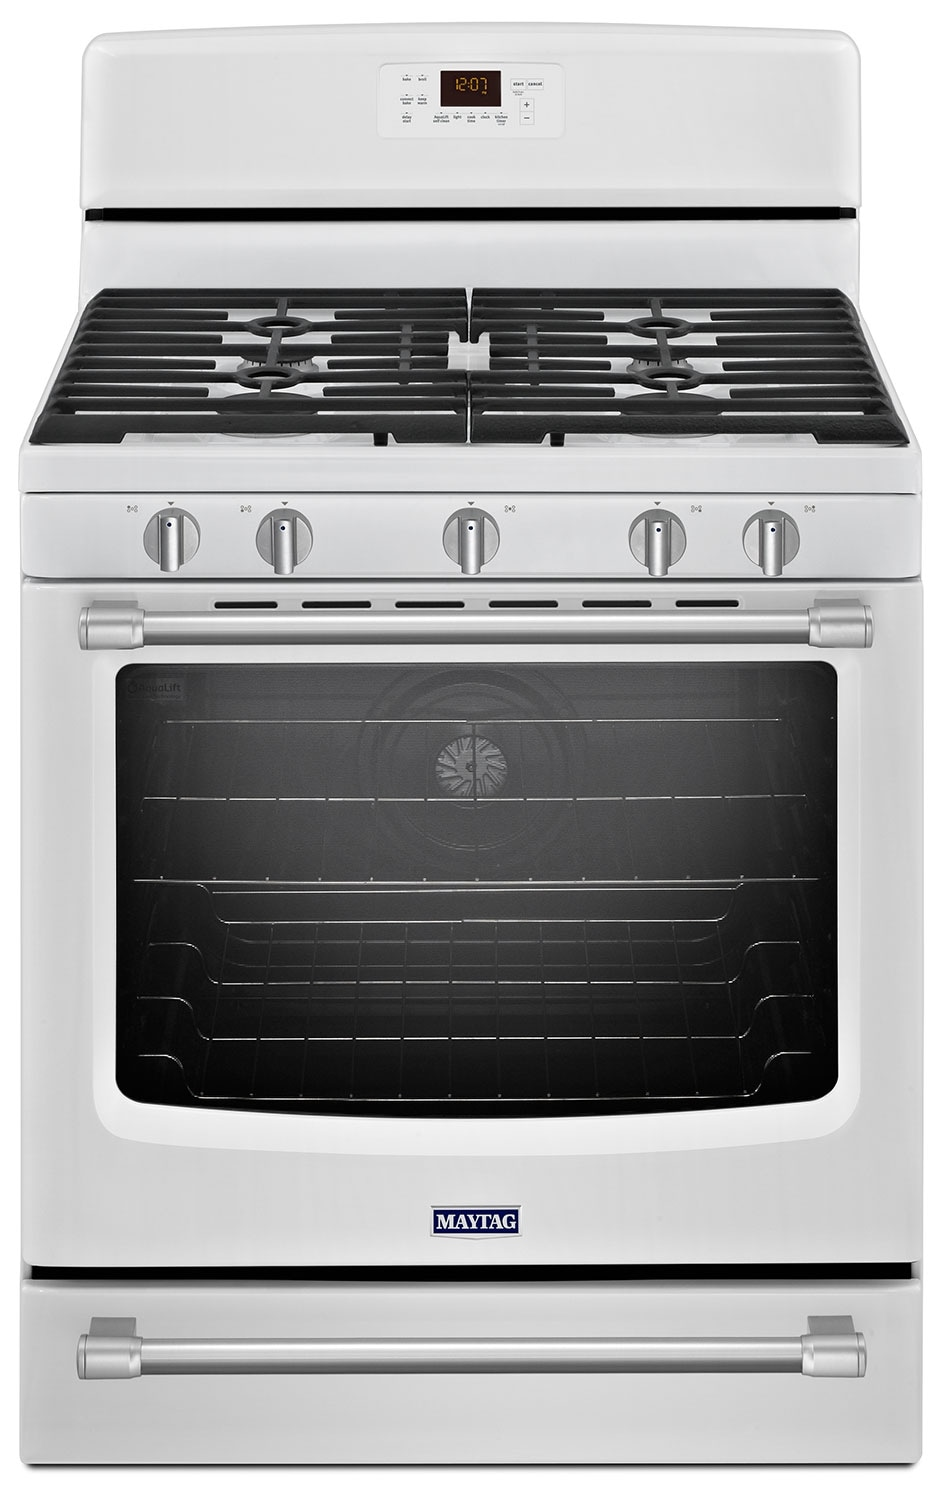 Maytag White Freestanding Gas Convection Range (5.8 Cu. Ft.) - MGR8700DH